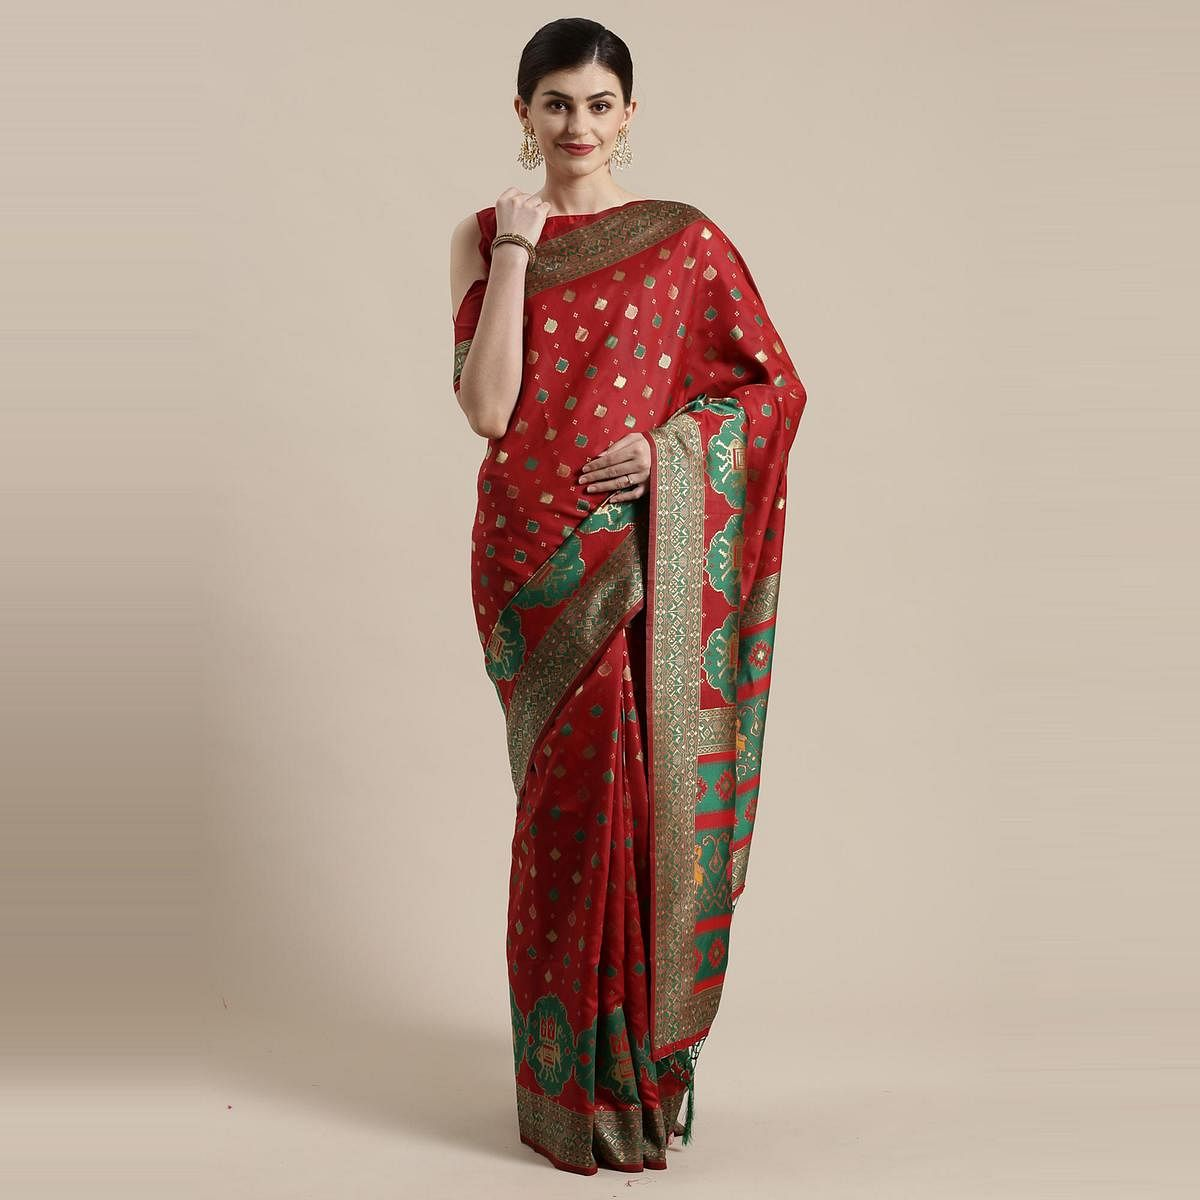 Hypnotic Maroon Colored Festive Wear Woven Silk Belnd Saree With Tassels